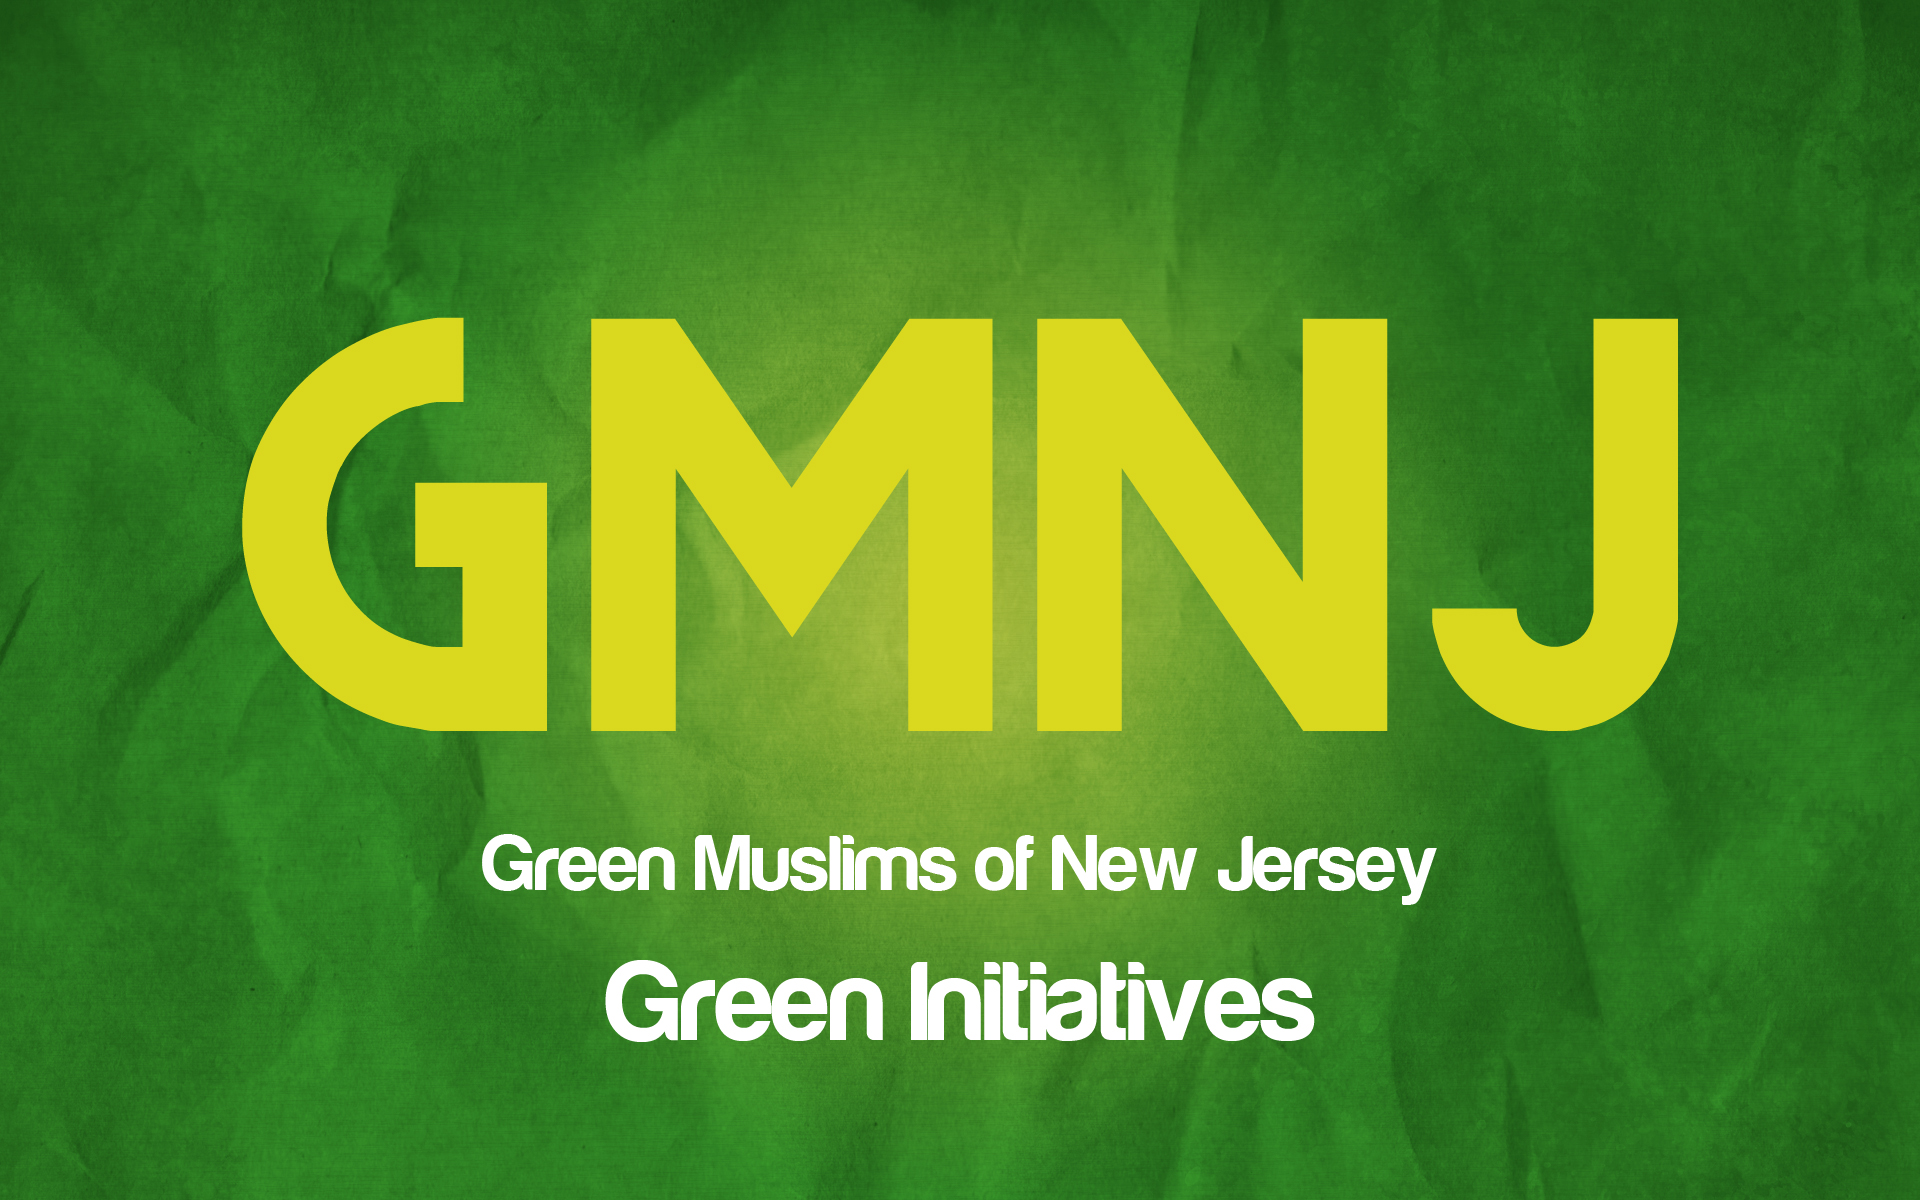 Green Muslims of New Jersey logo showing that they have joined with more than 50 organizations in support of action on climate change